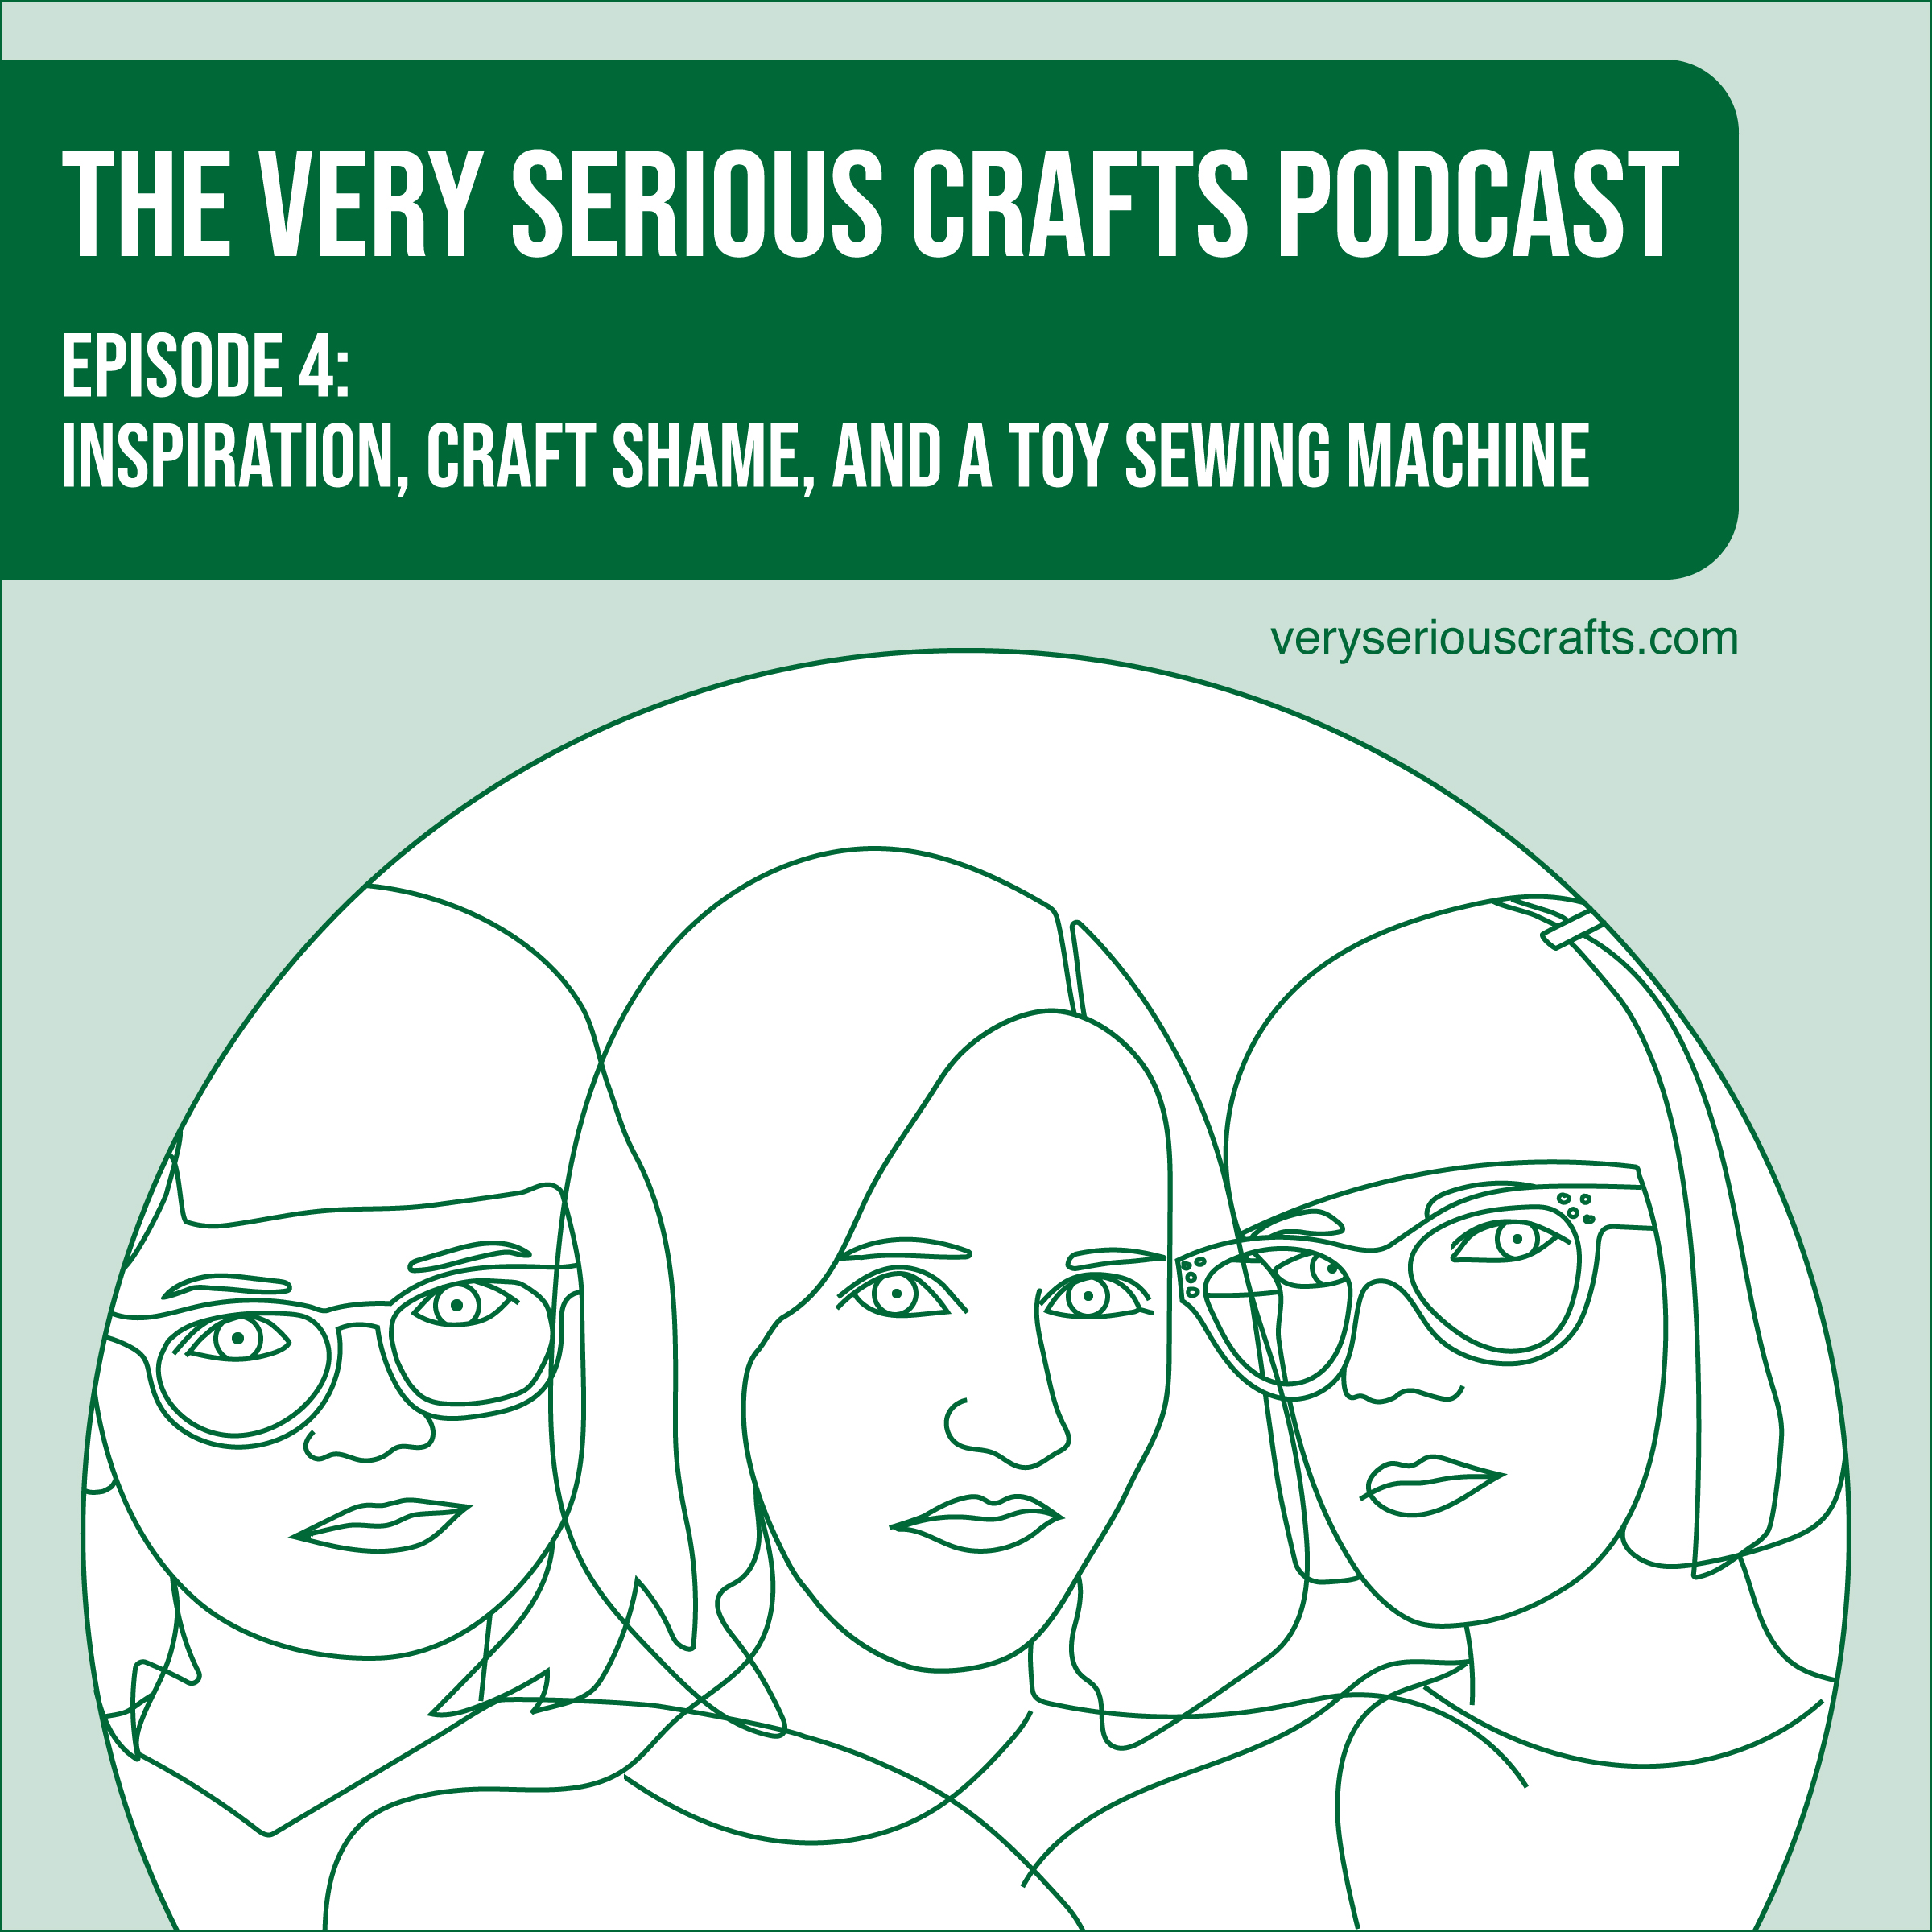 The Very Serious Crafts Podcast, Season 1: Episode 4 – Inspiration, Craft Shame, and a Toy Sewing Machine